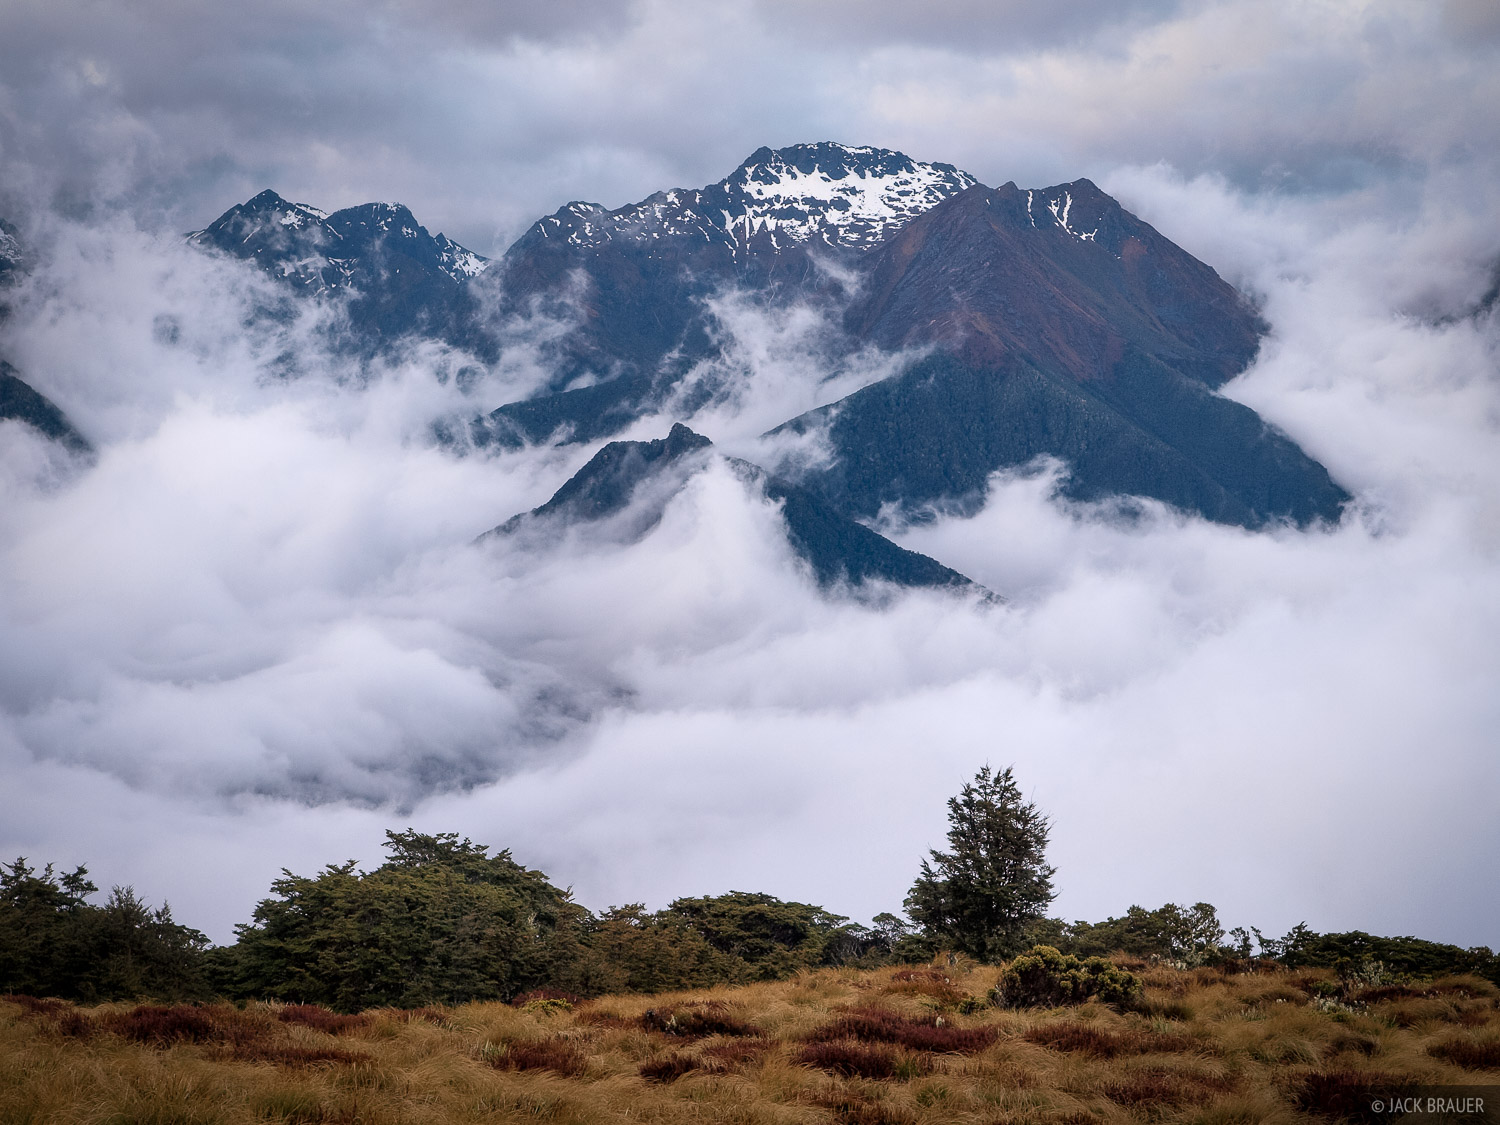 The Murchison Mountains emerge from the clouds during stormy weather, as seen from near the Luxmore Hut along the Kepler Track...